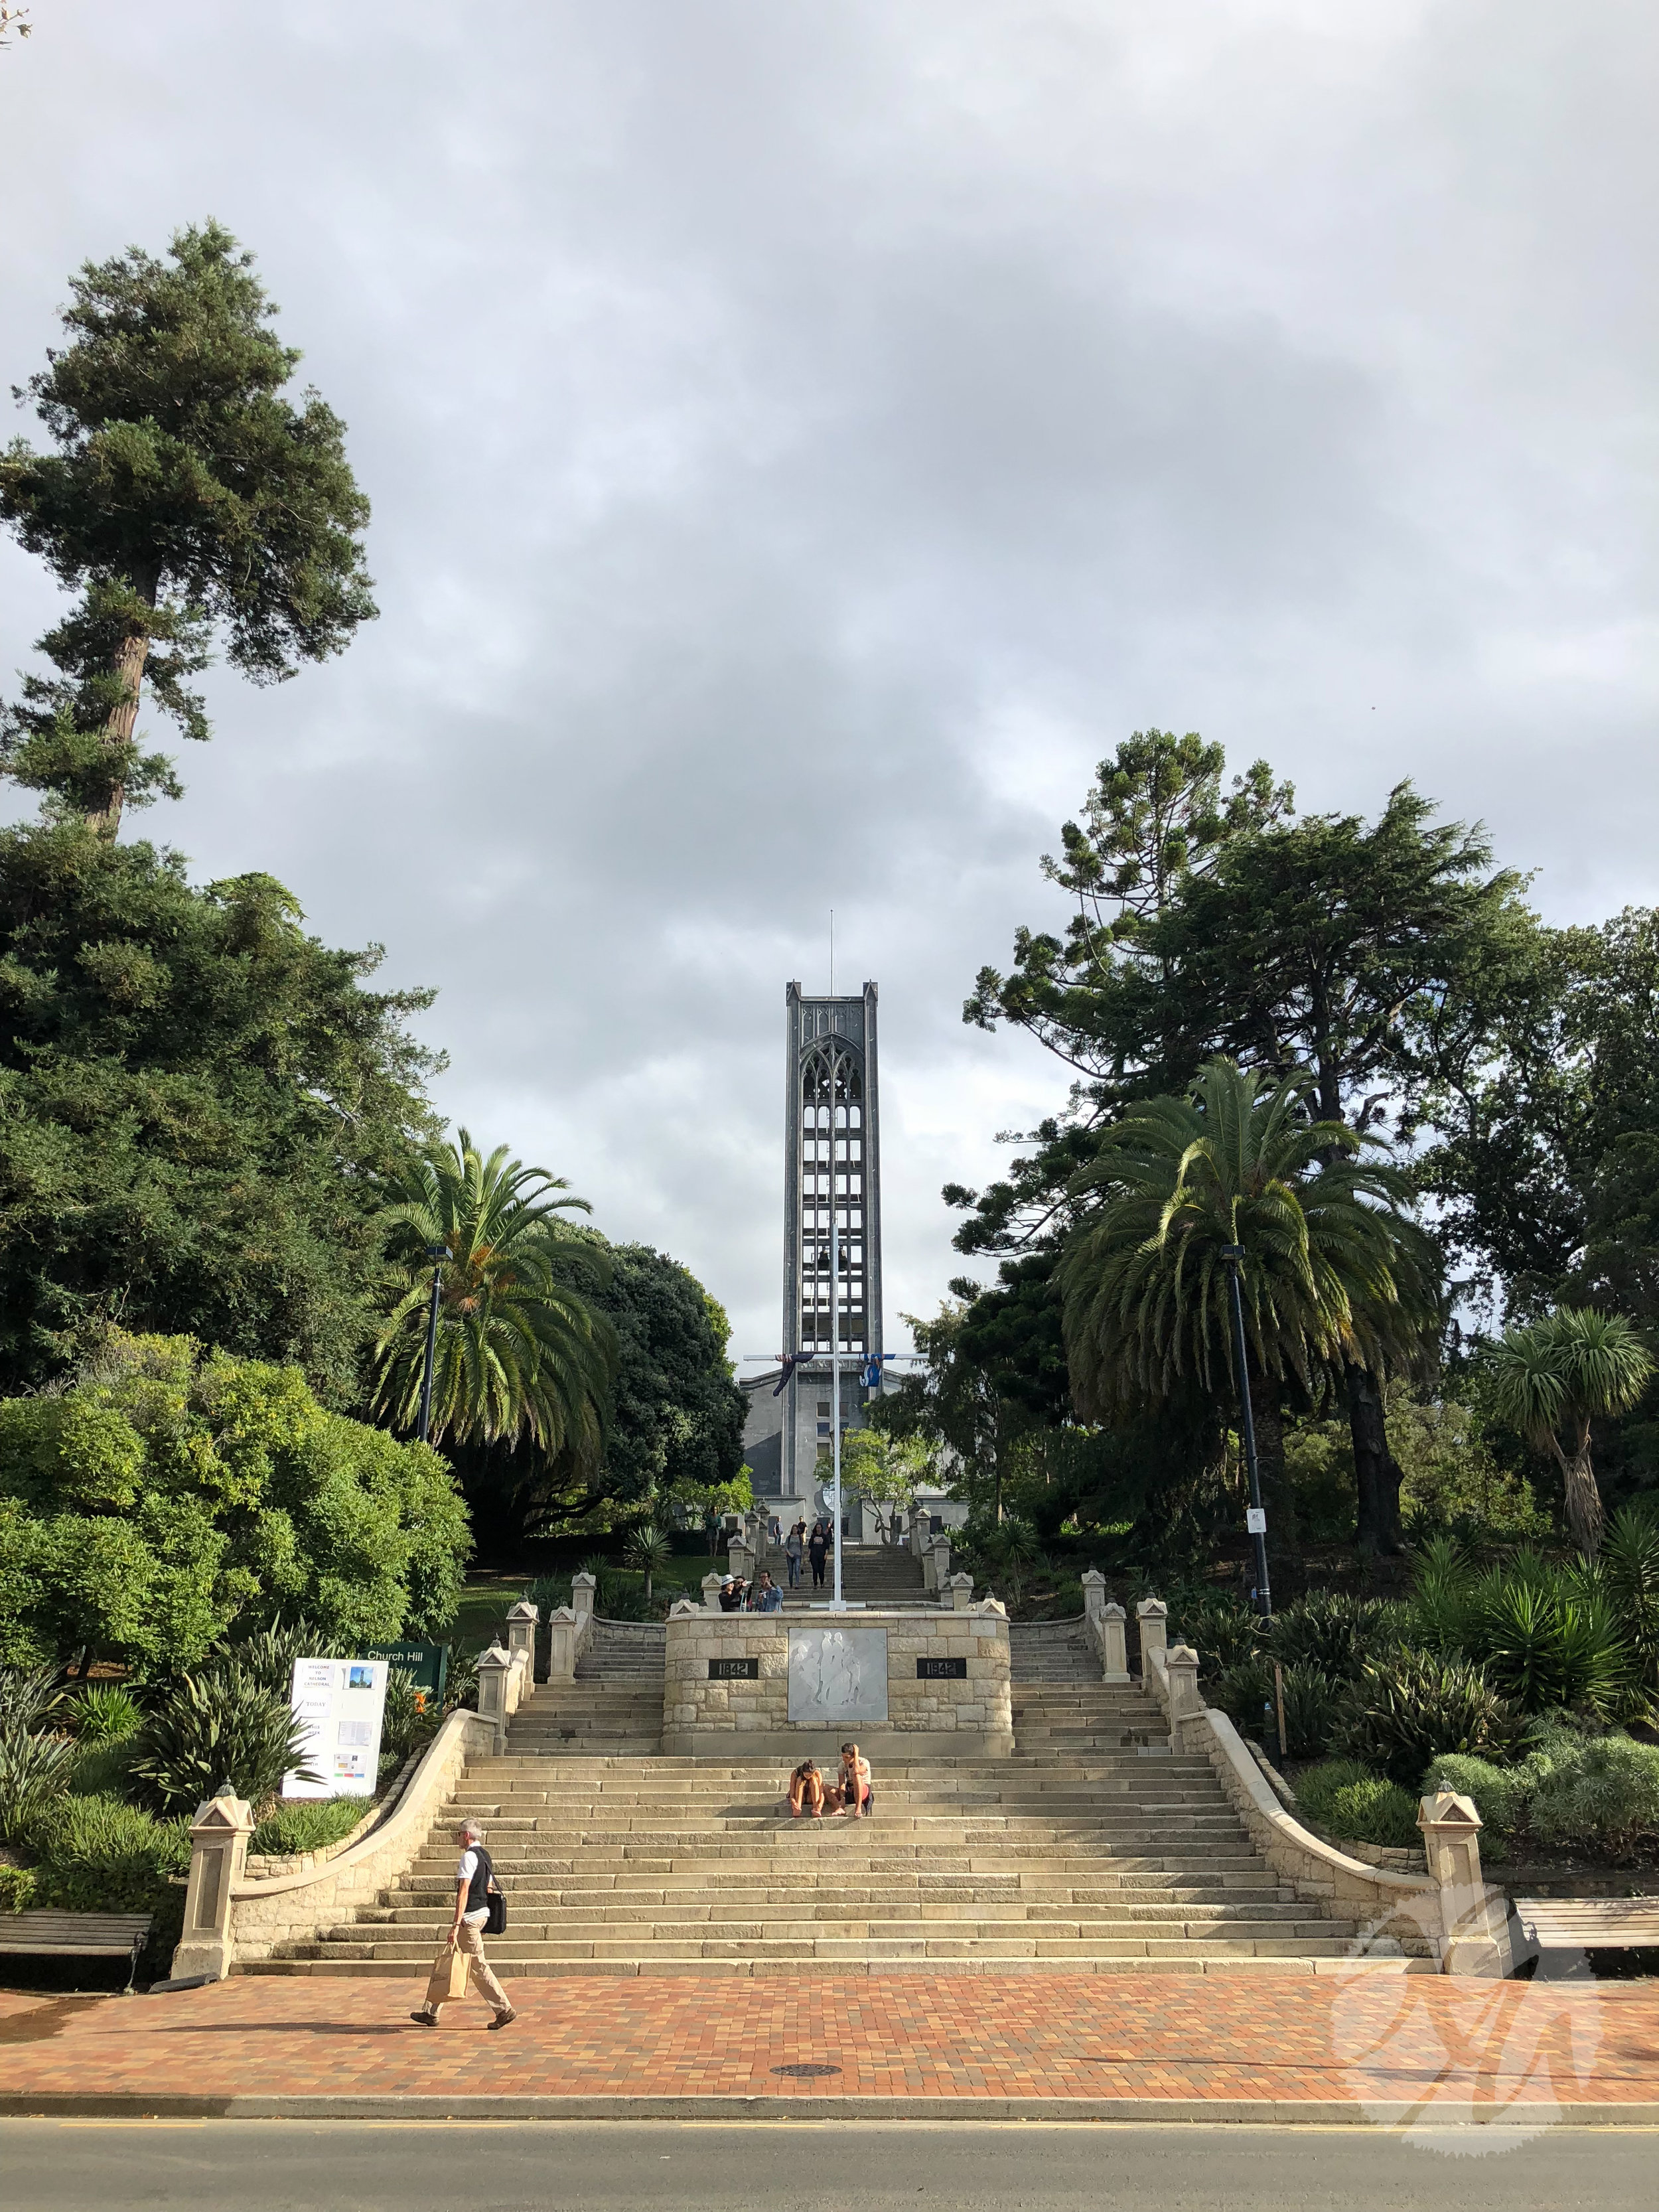 The centrally located bell tower in downtown Nelson